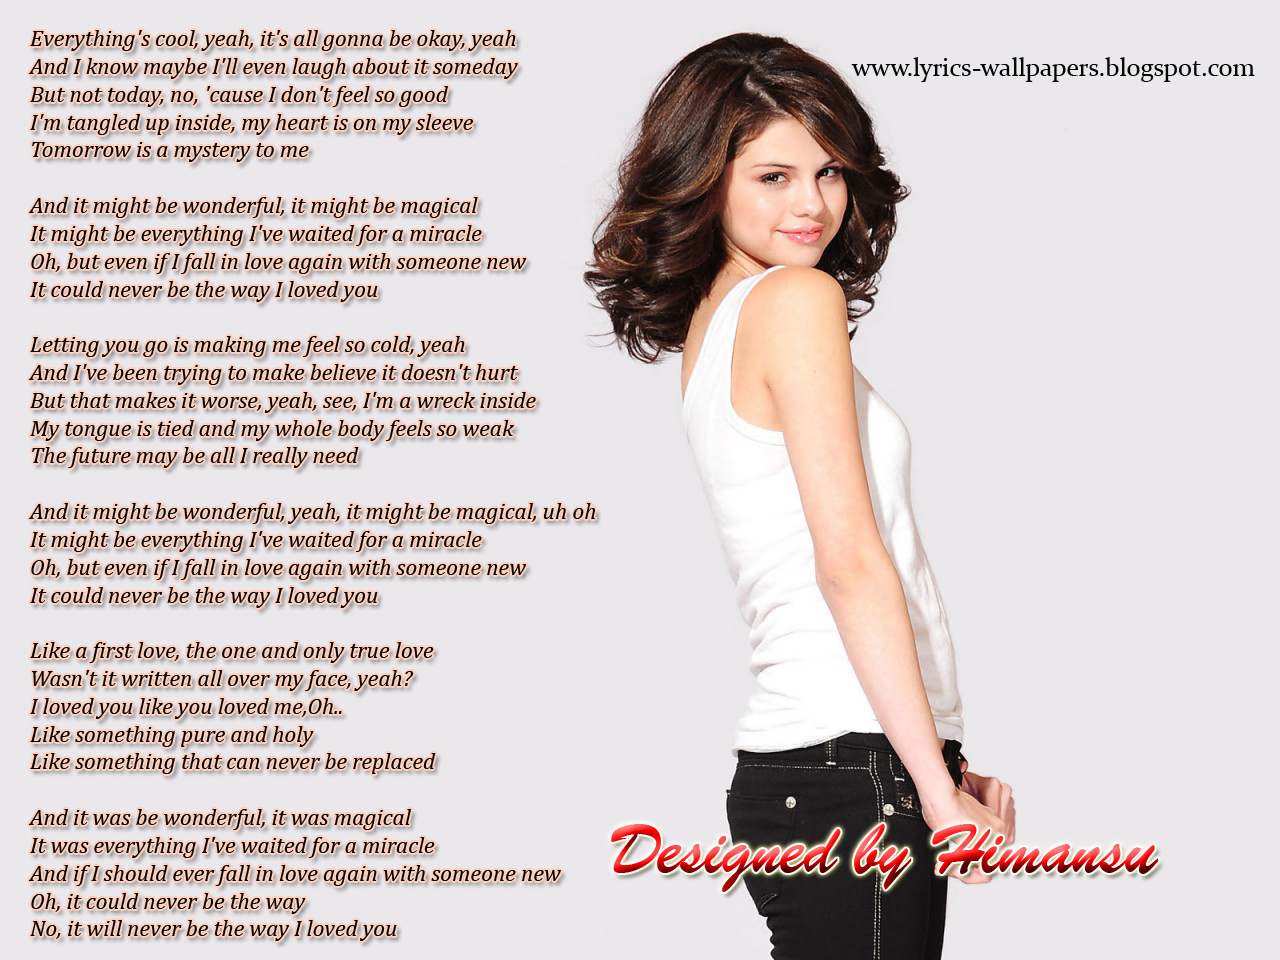 Fall Wallpapers 2017 Lyrics Wallpapers Selena Gomez The Way I Loved You